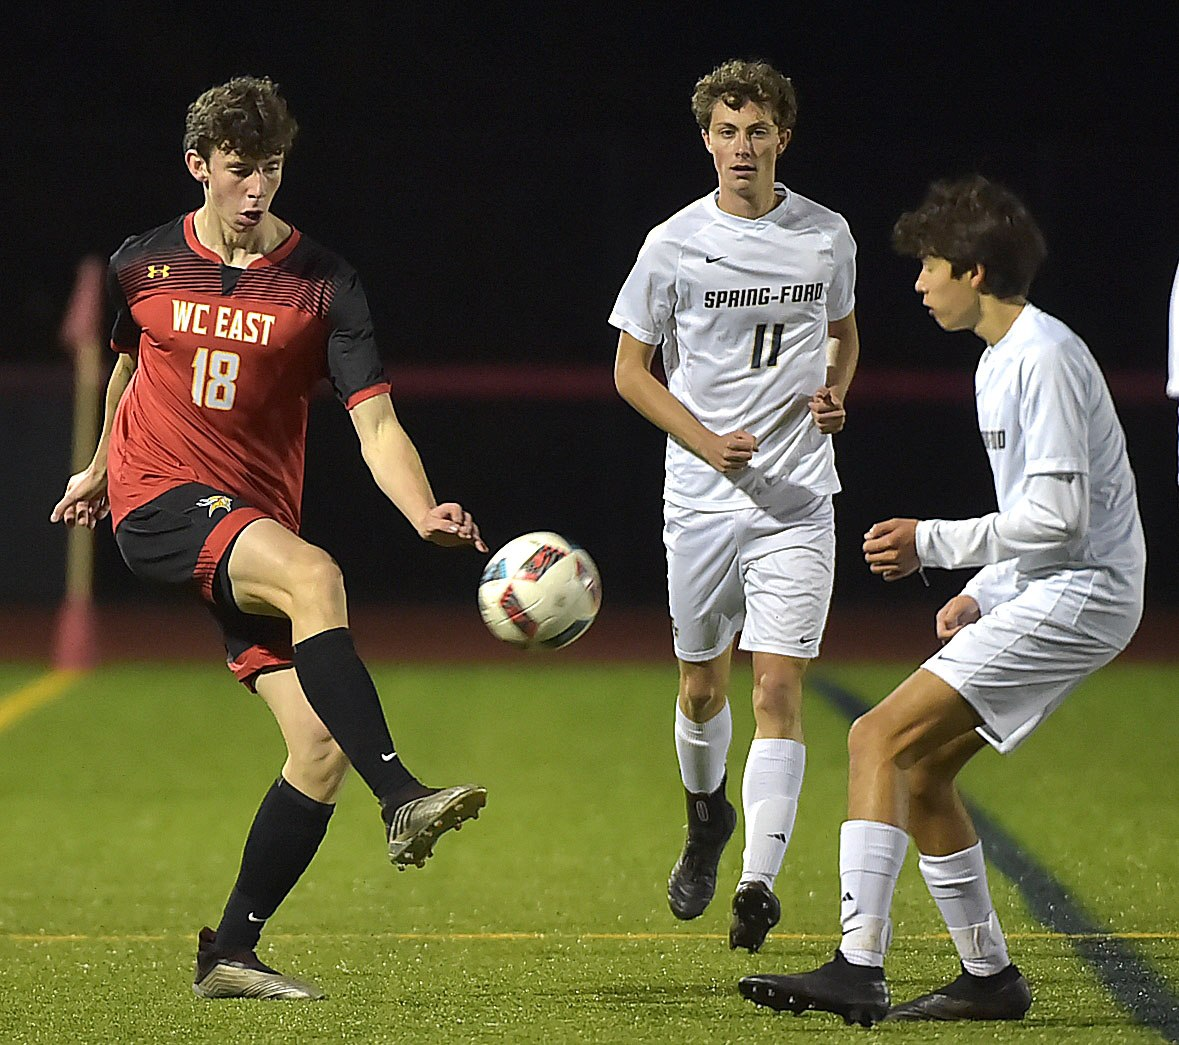 West Chester East forward (18) David Keith tries to move the ball against Spring-Ford in the first period. Spring-Ford went on to win 1-0 in District playoff action at West Chester East Thursday night.